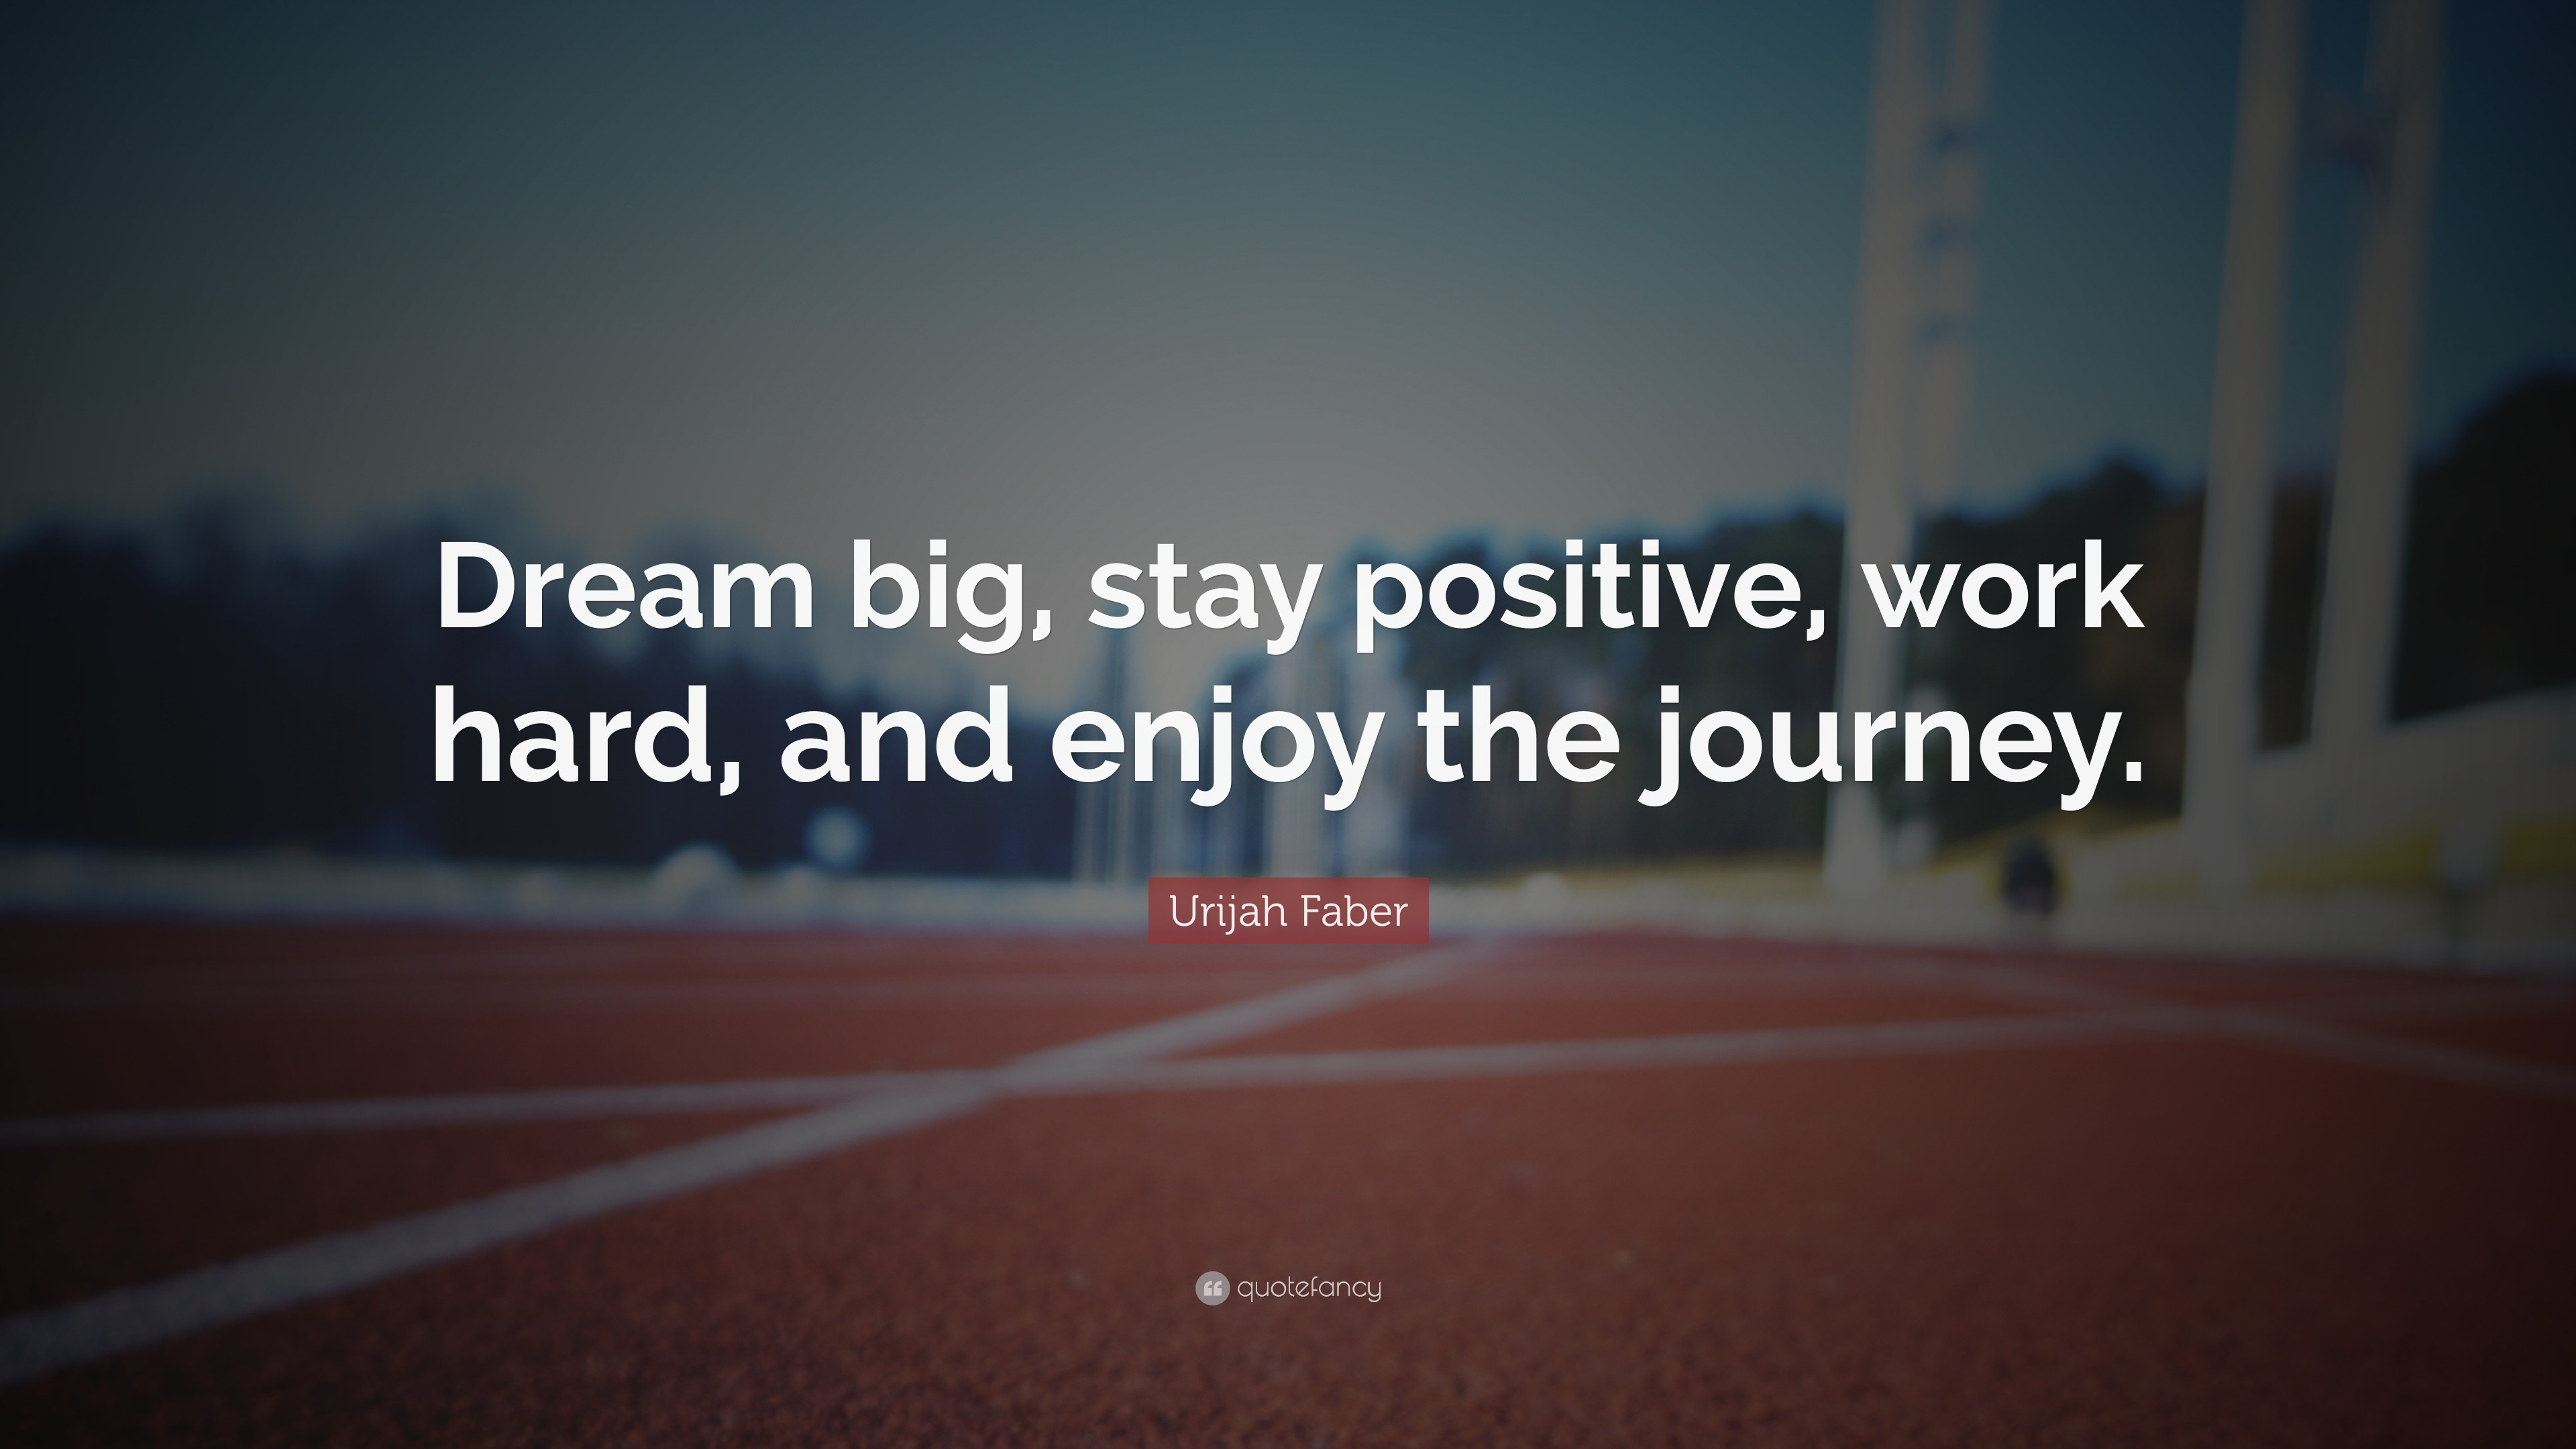 Wallpaper Stay Positive Quotes Hd Typography 3707: Work Hard Dream Big Wallpaper (80+ Images